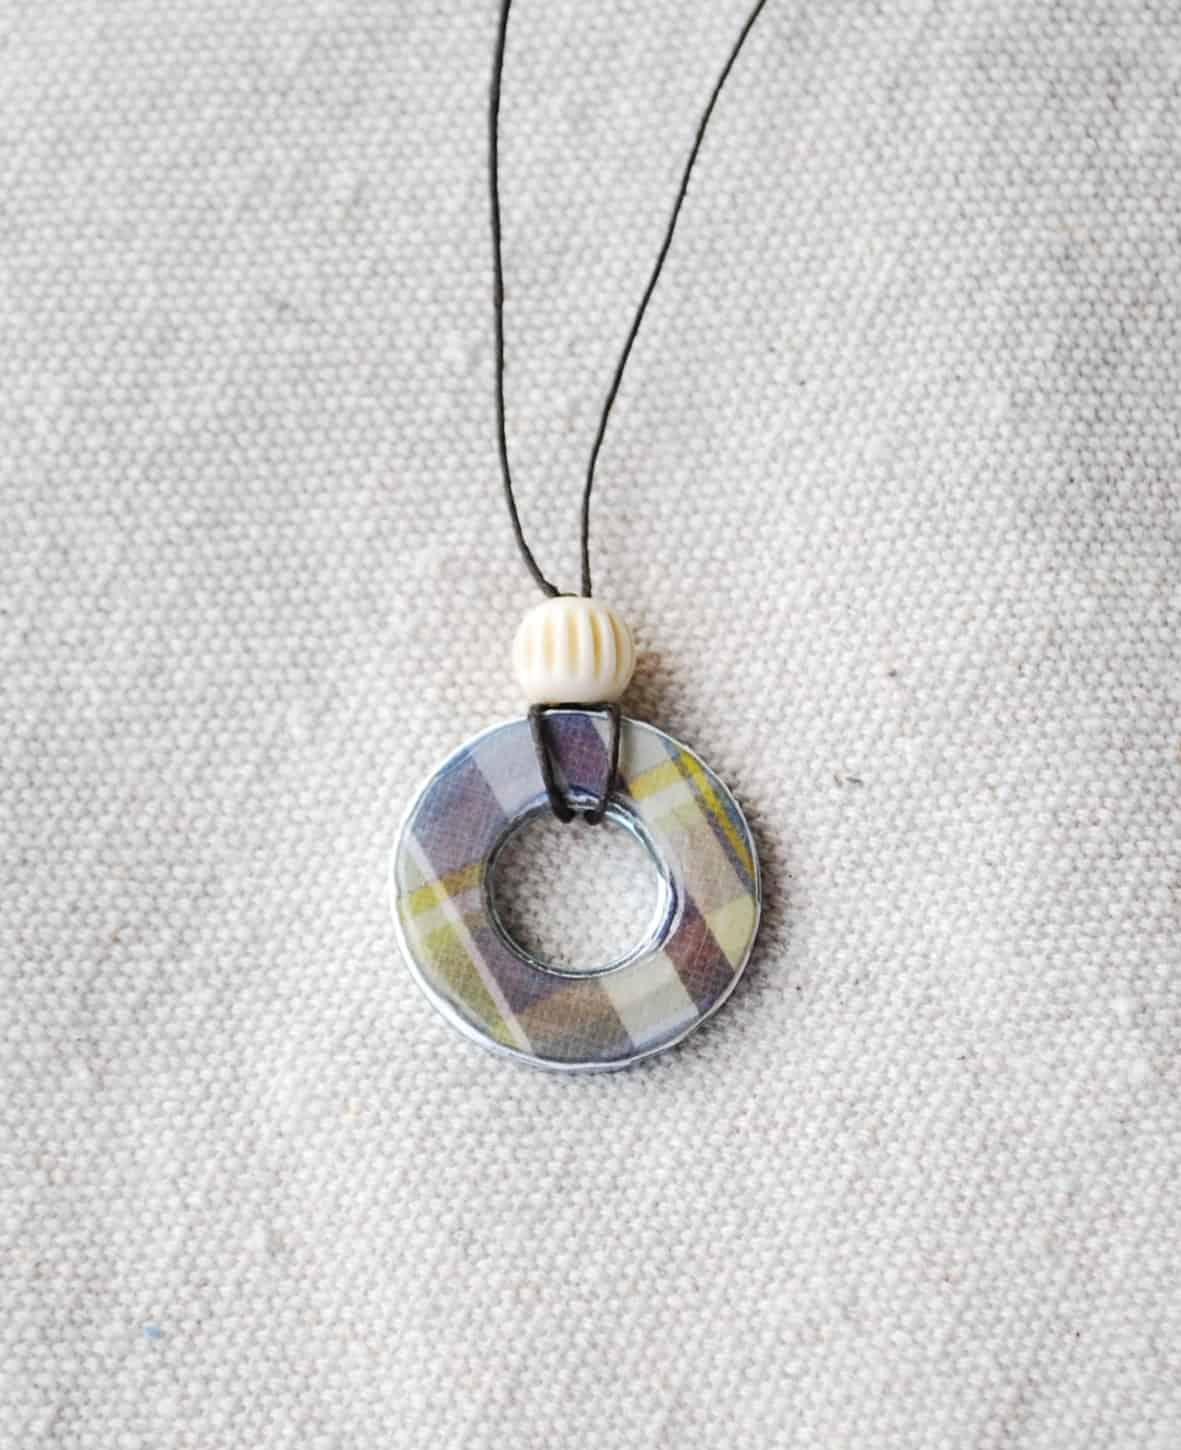 washer necklace tutorial 006 creations by kara